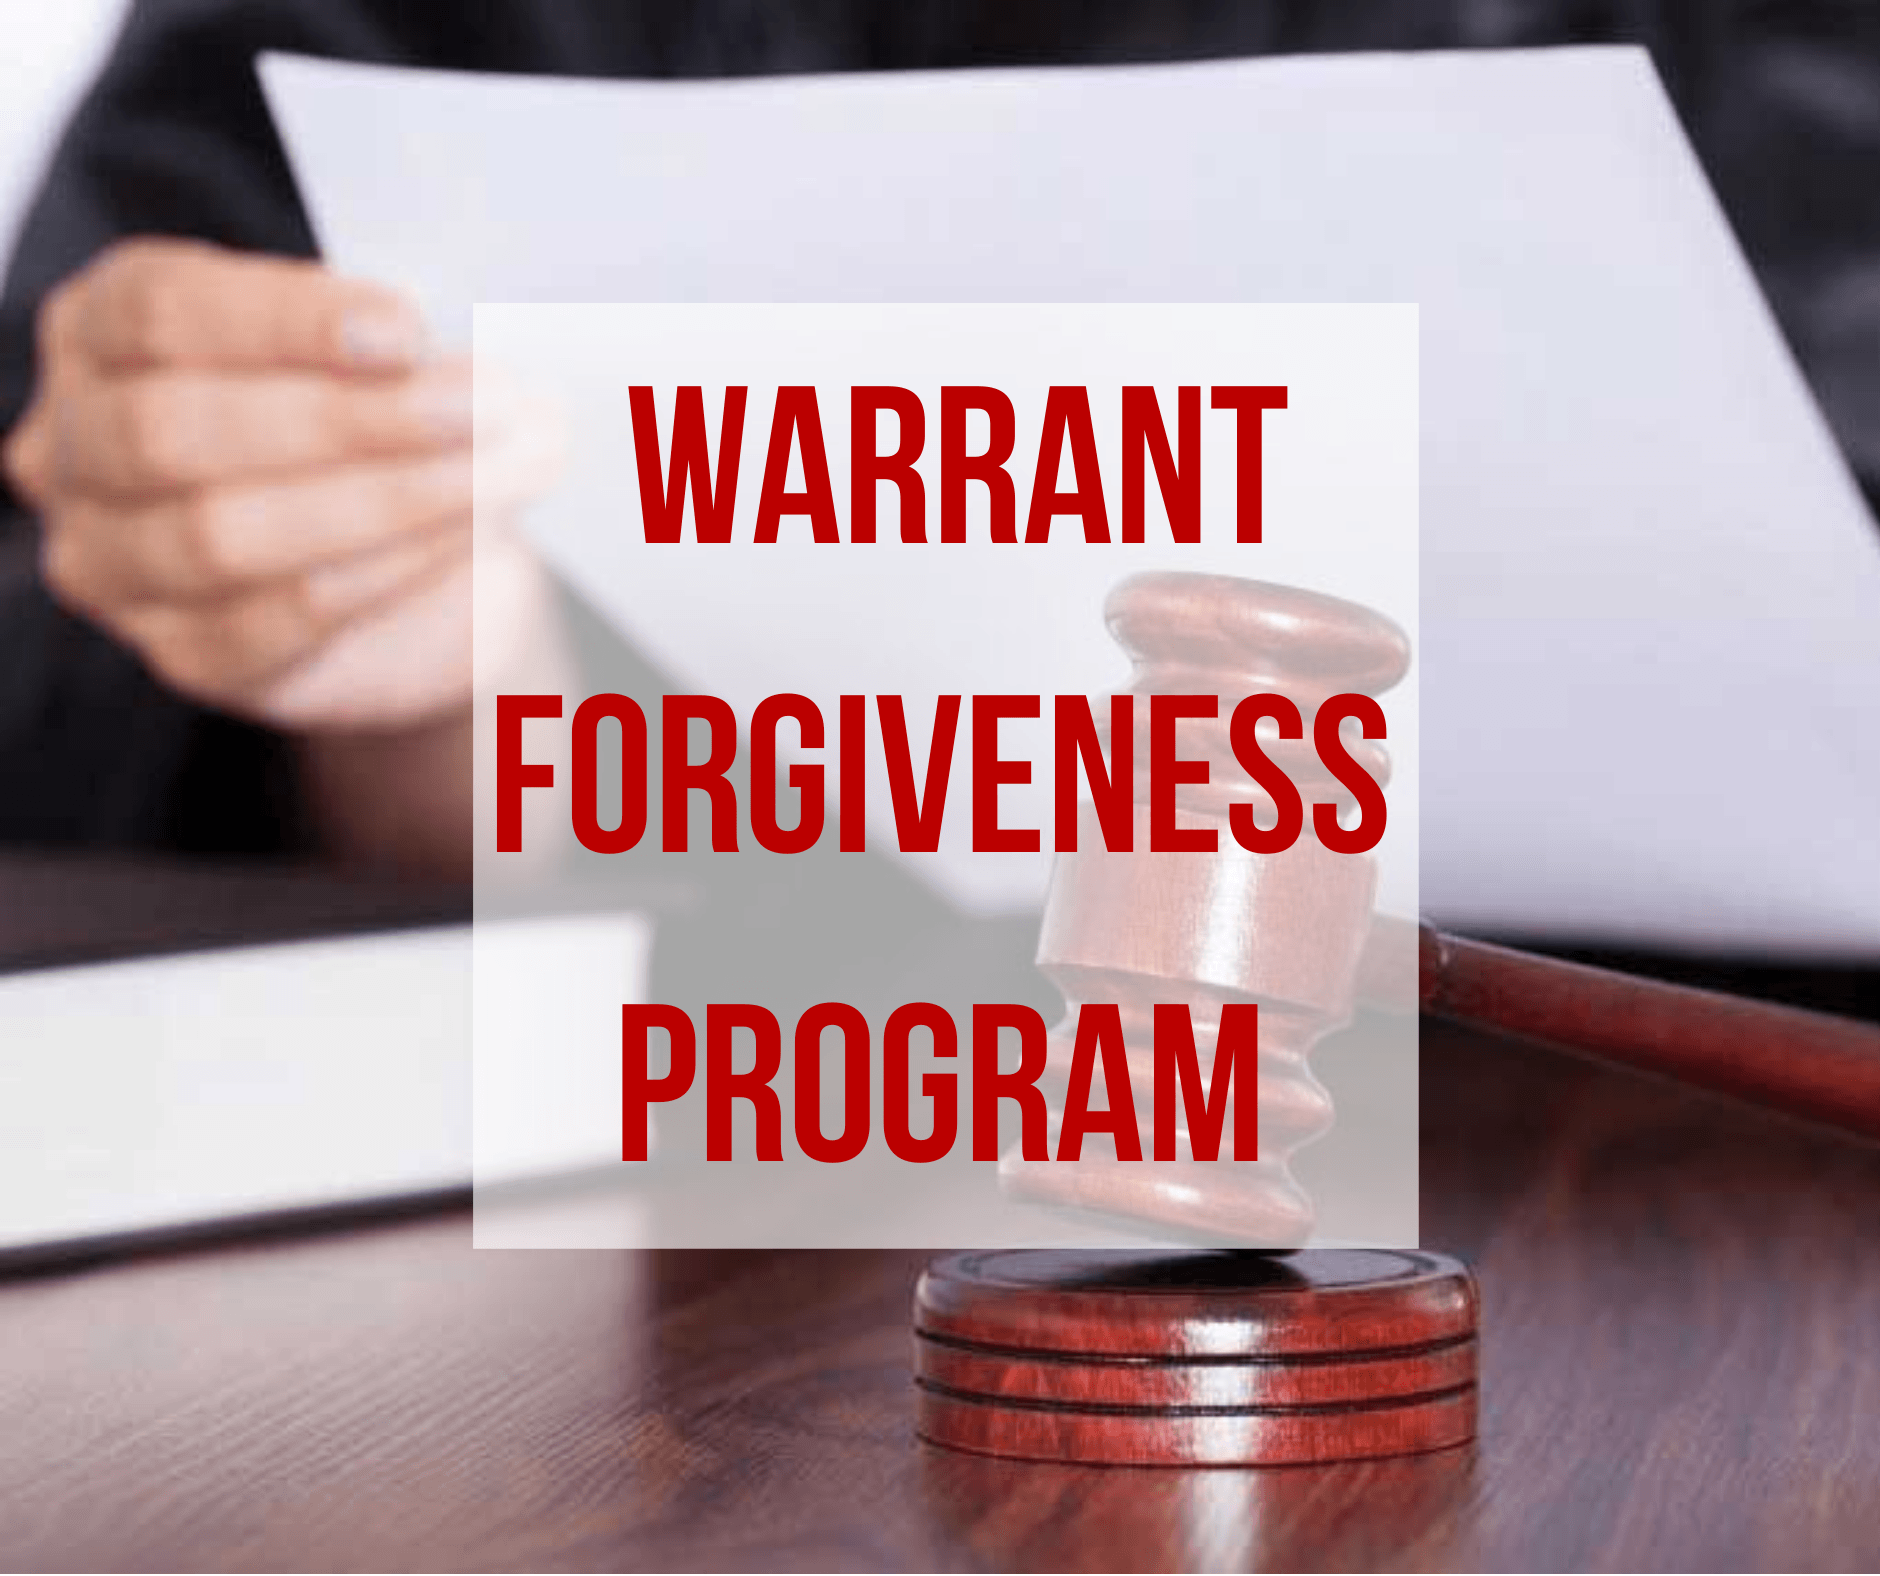 Text Warrant Forgiveness Program over image of judge with gavel